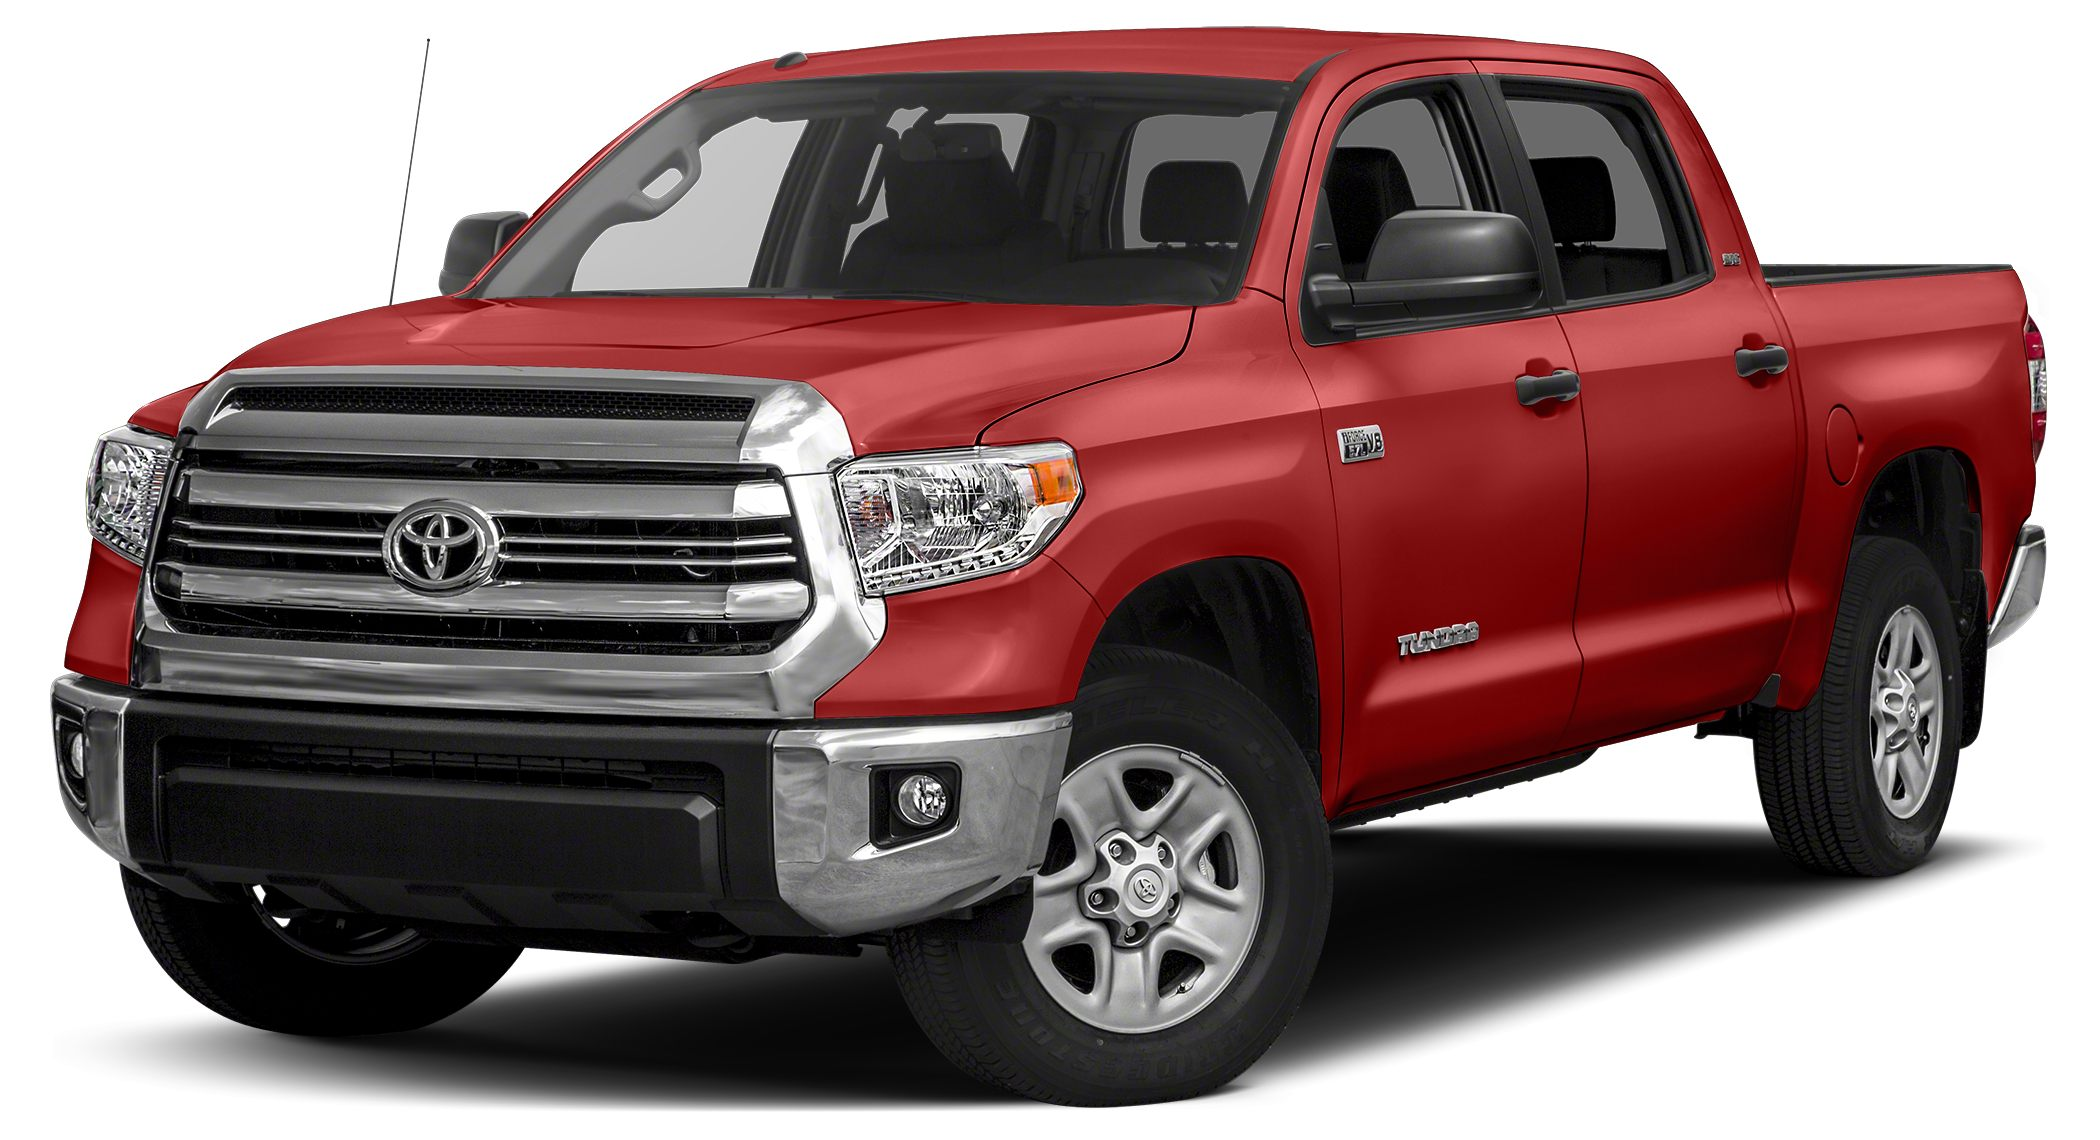 2017 Toyota Tundra SR5 SR5 trim INFERNO exterior and BLACK interior iPodMP3 Input Satellite Ra